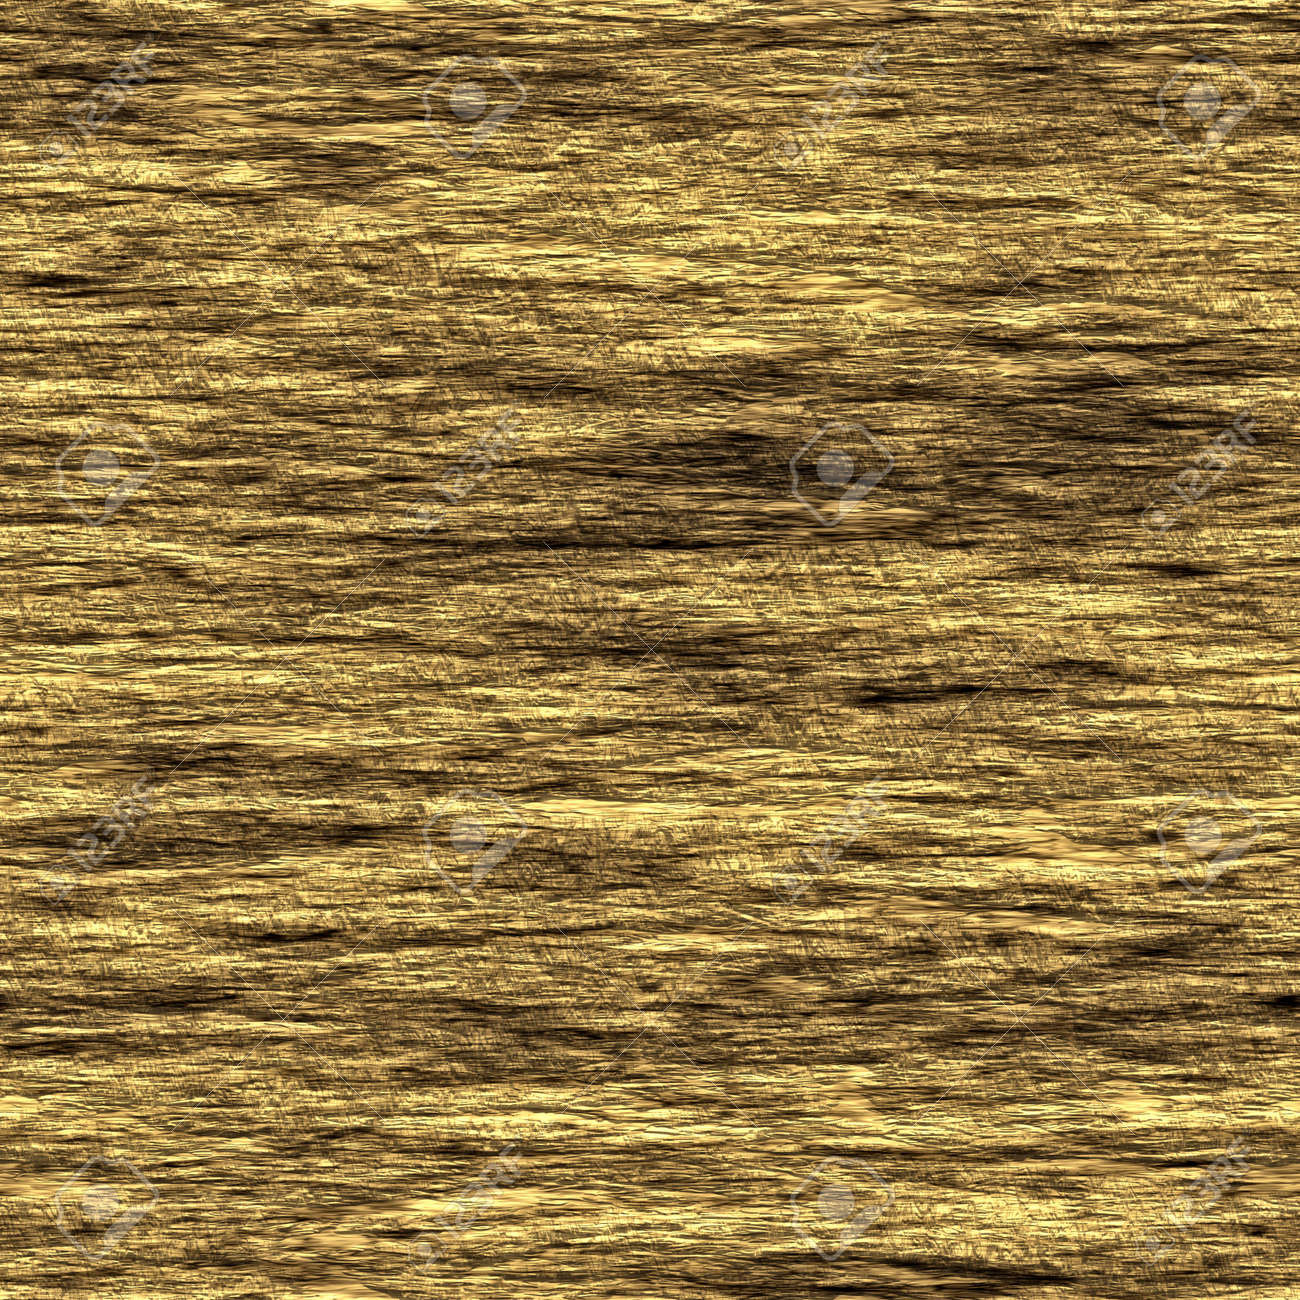 Rough Wood Seamless Texture Tile Stock Photo   14256059. Rough Wood Seamless Texture Tile Stock Photo  Picture And Royalty